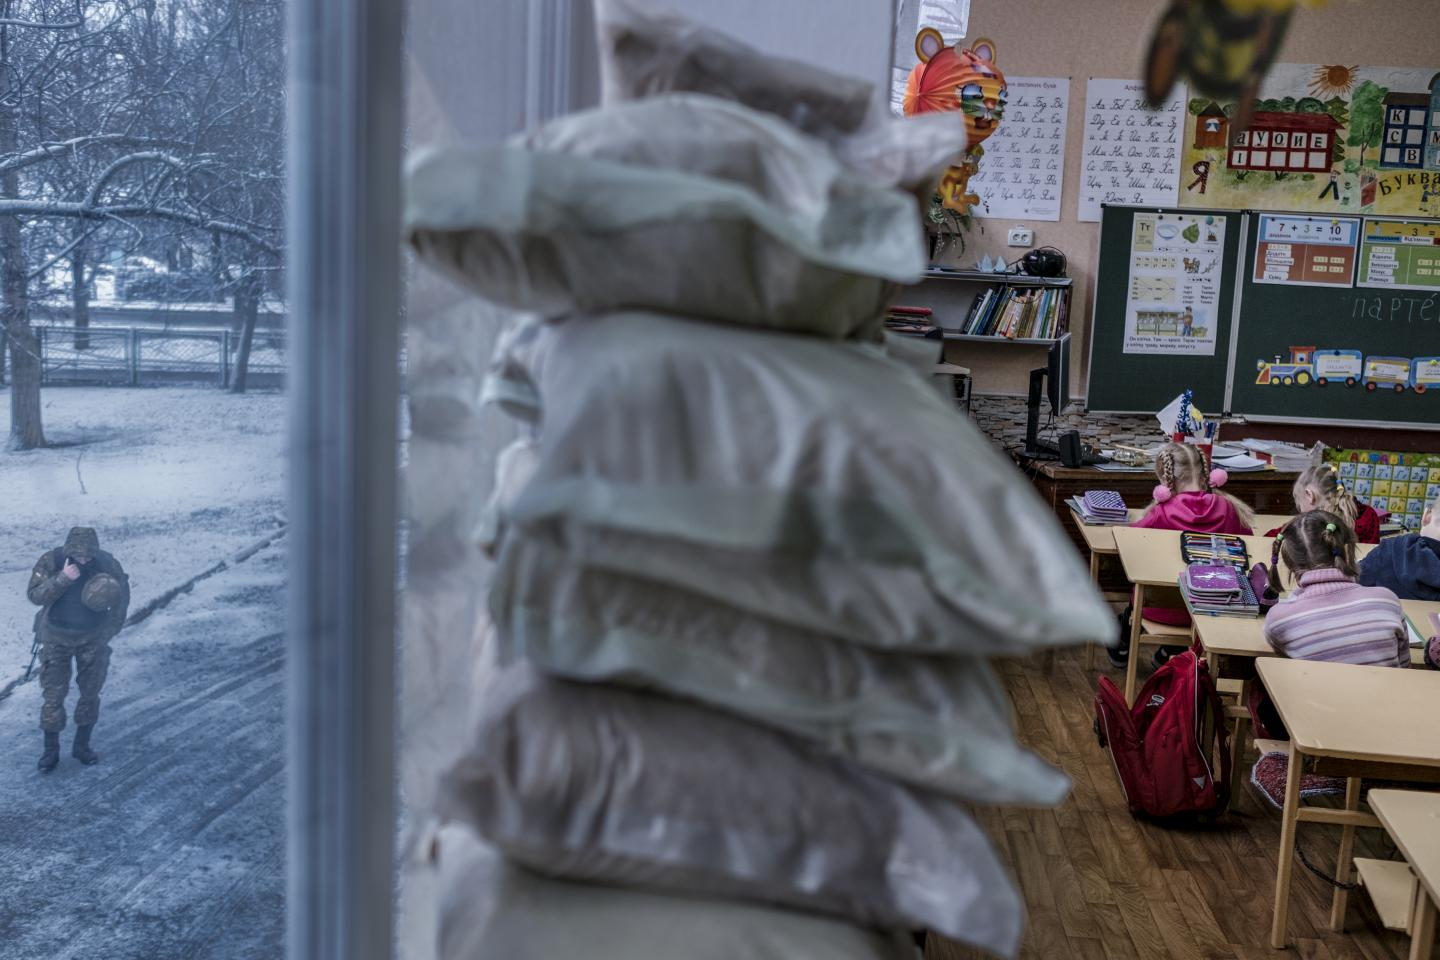 An armed police officer (left) patrols outside a classroom of first graders where the windows have been covered with sandbags, at a school in Marinka, Donetsk Oblast, Ukraine, Wednesday 22 November 2017.